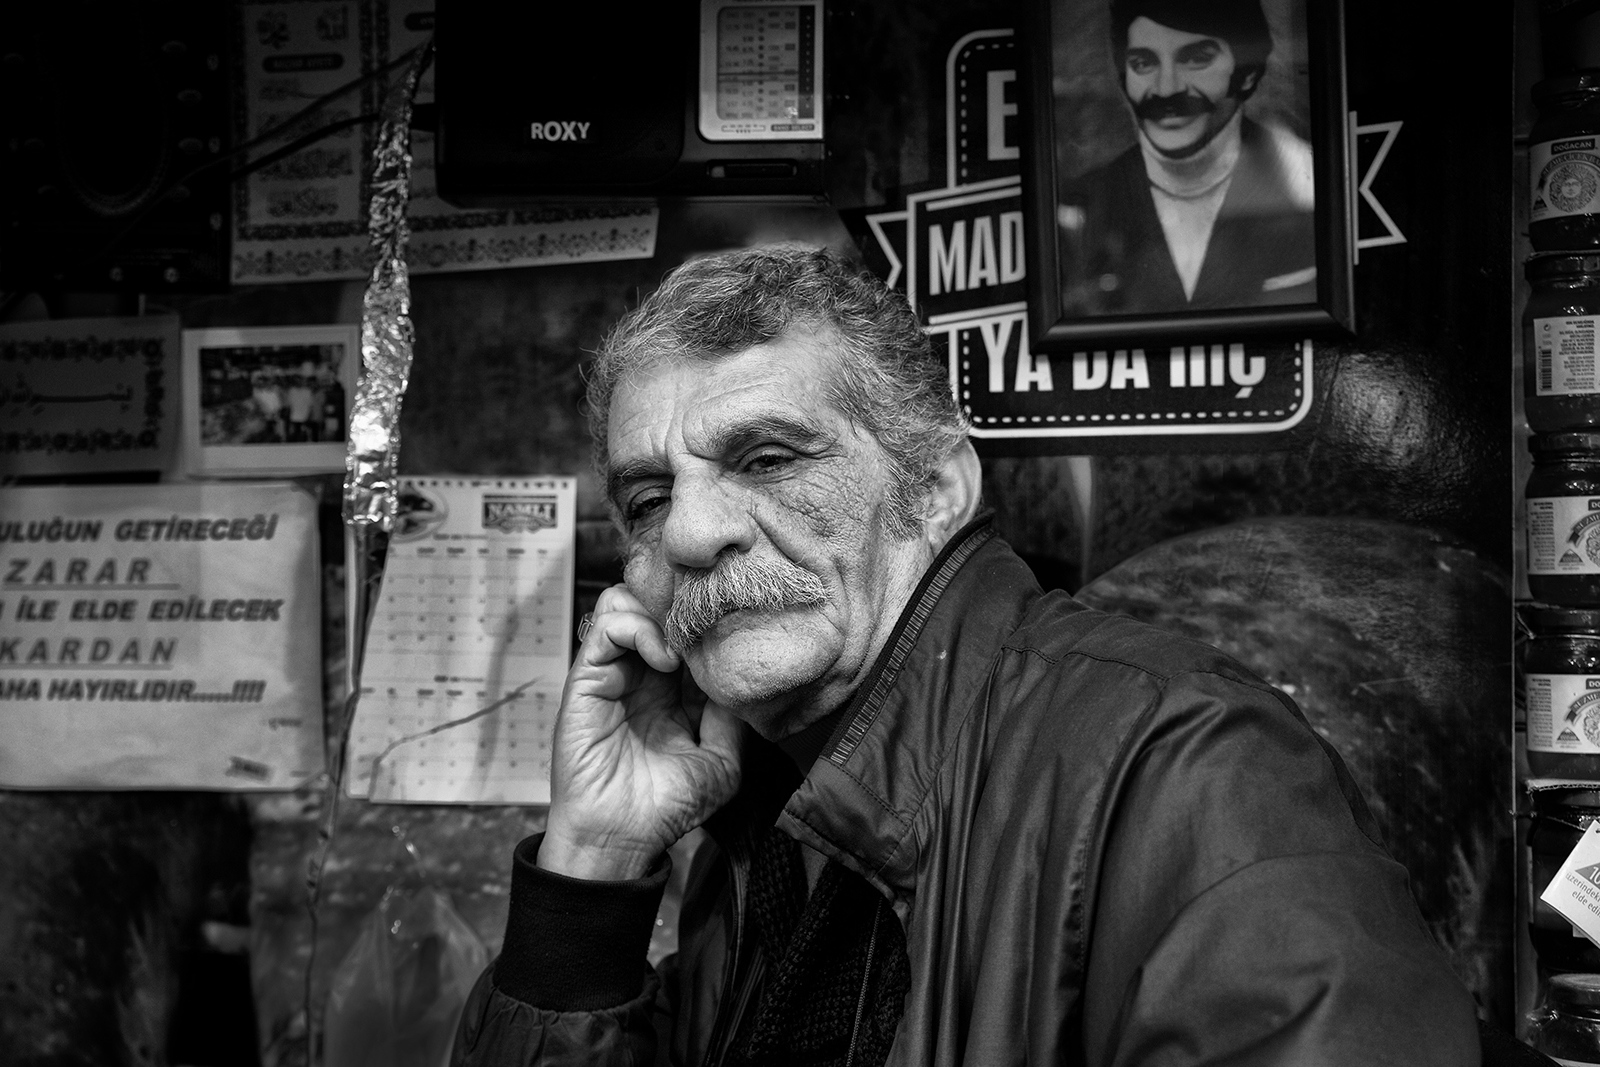 Istanbul 2016, Ashop keeper at the spice market posing in front of a photo of his youth.